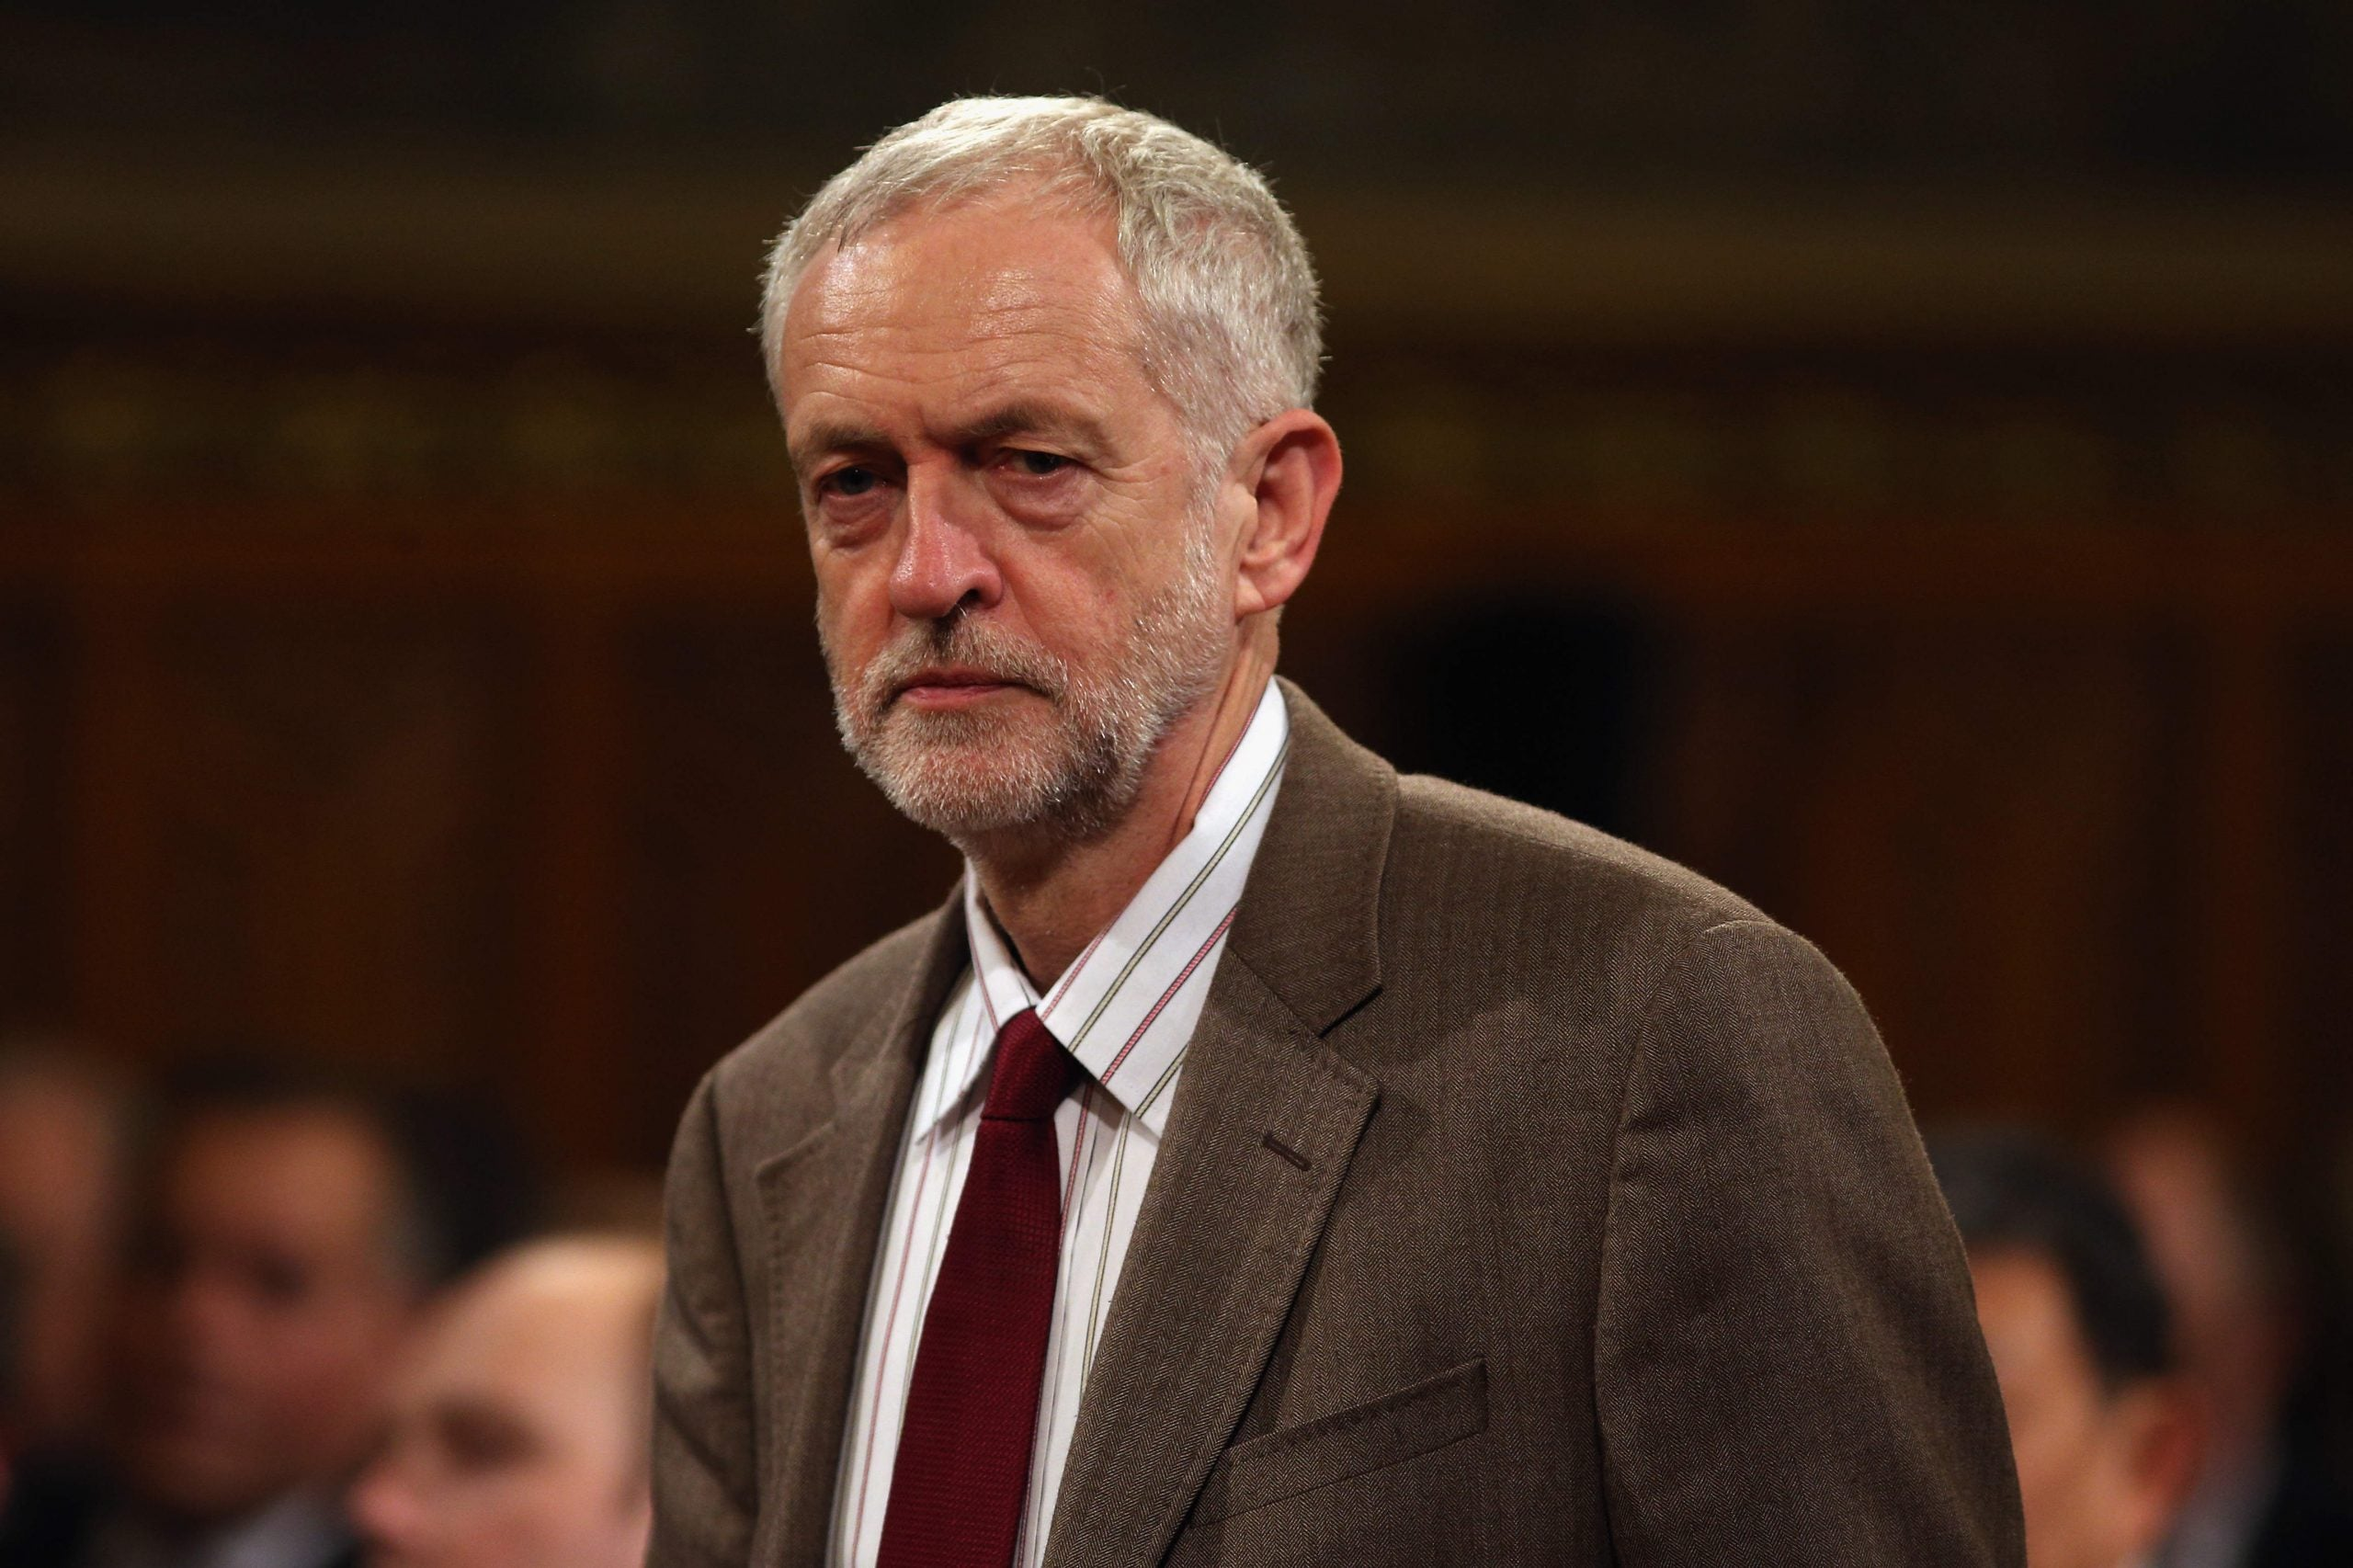 Commons confidential: Jeremy Corbyn rebukes his aides for lack of professionalism